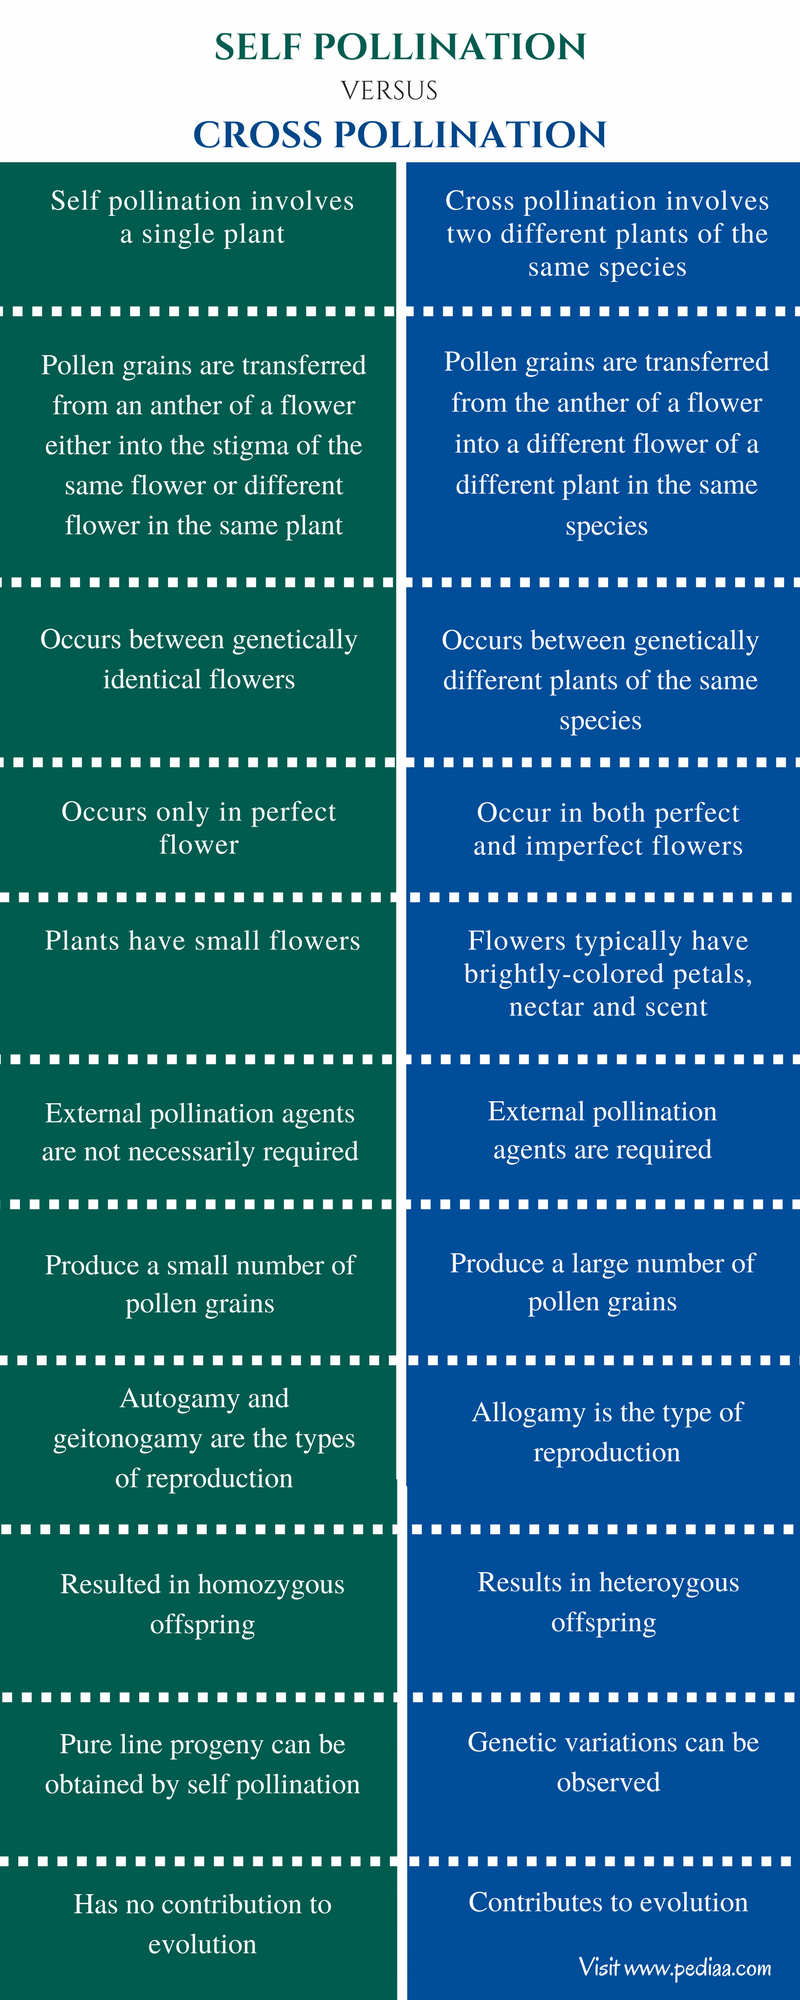 Difference Between Self and Cross Pollination - Comparison Summary